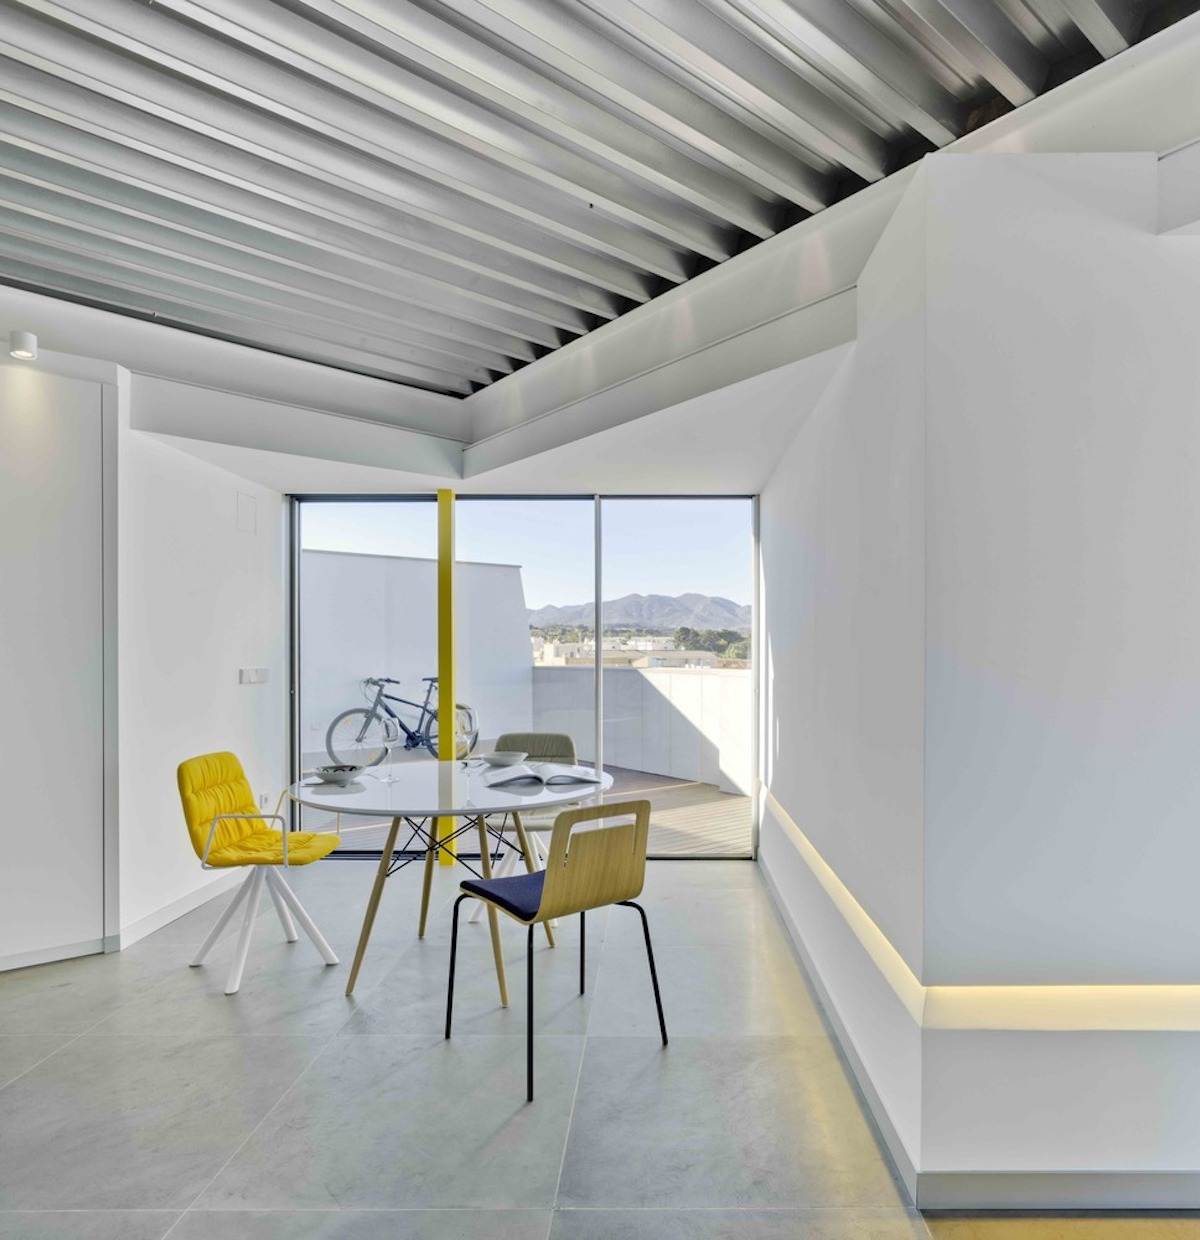 The roof terrace serves as an extension of the interior spaces, being a buffer between them and the exterior